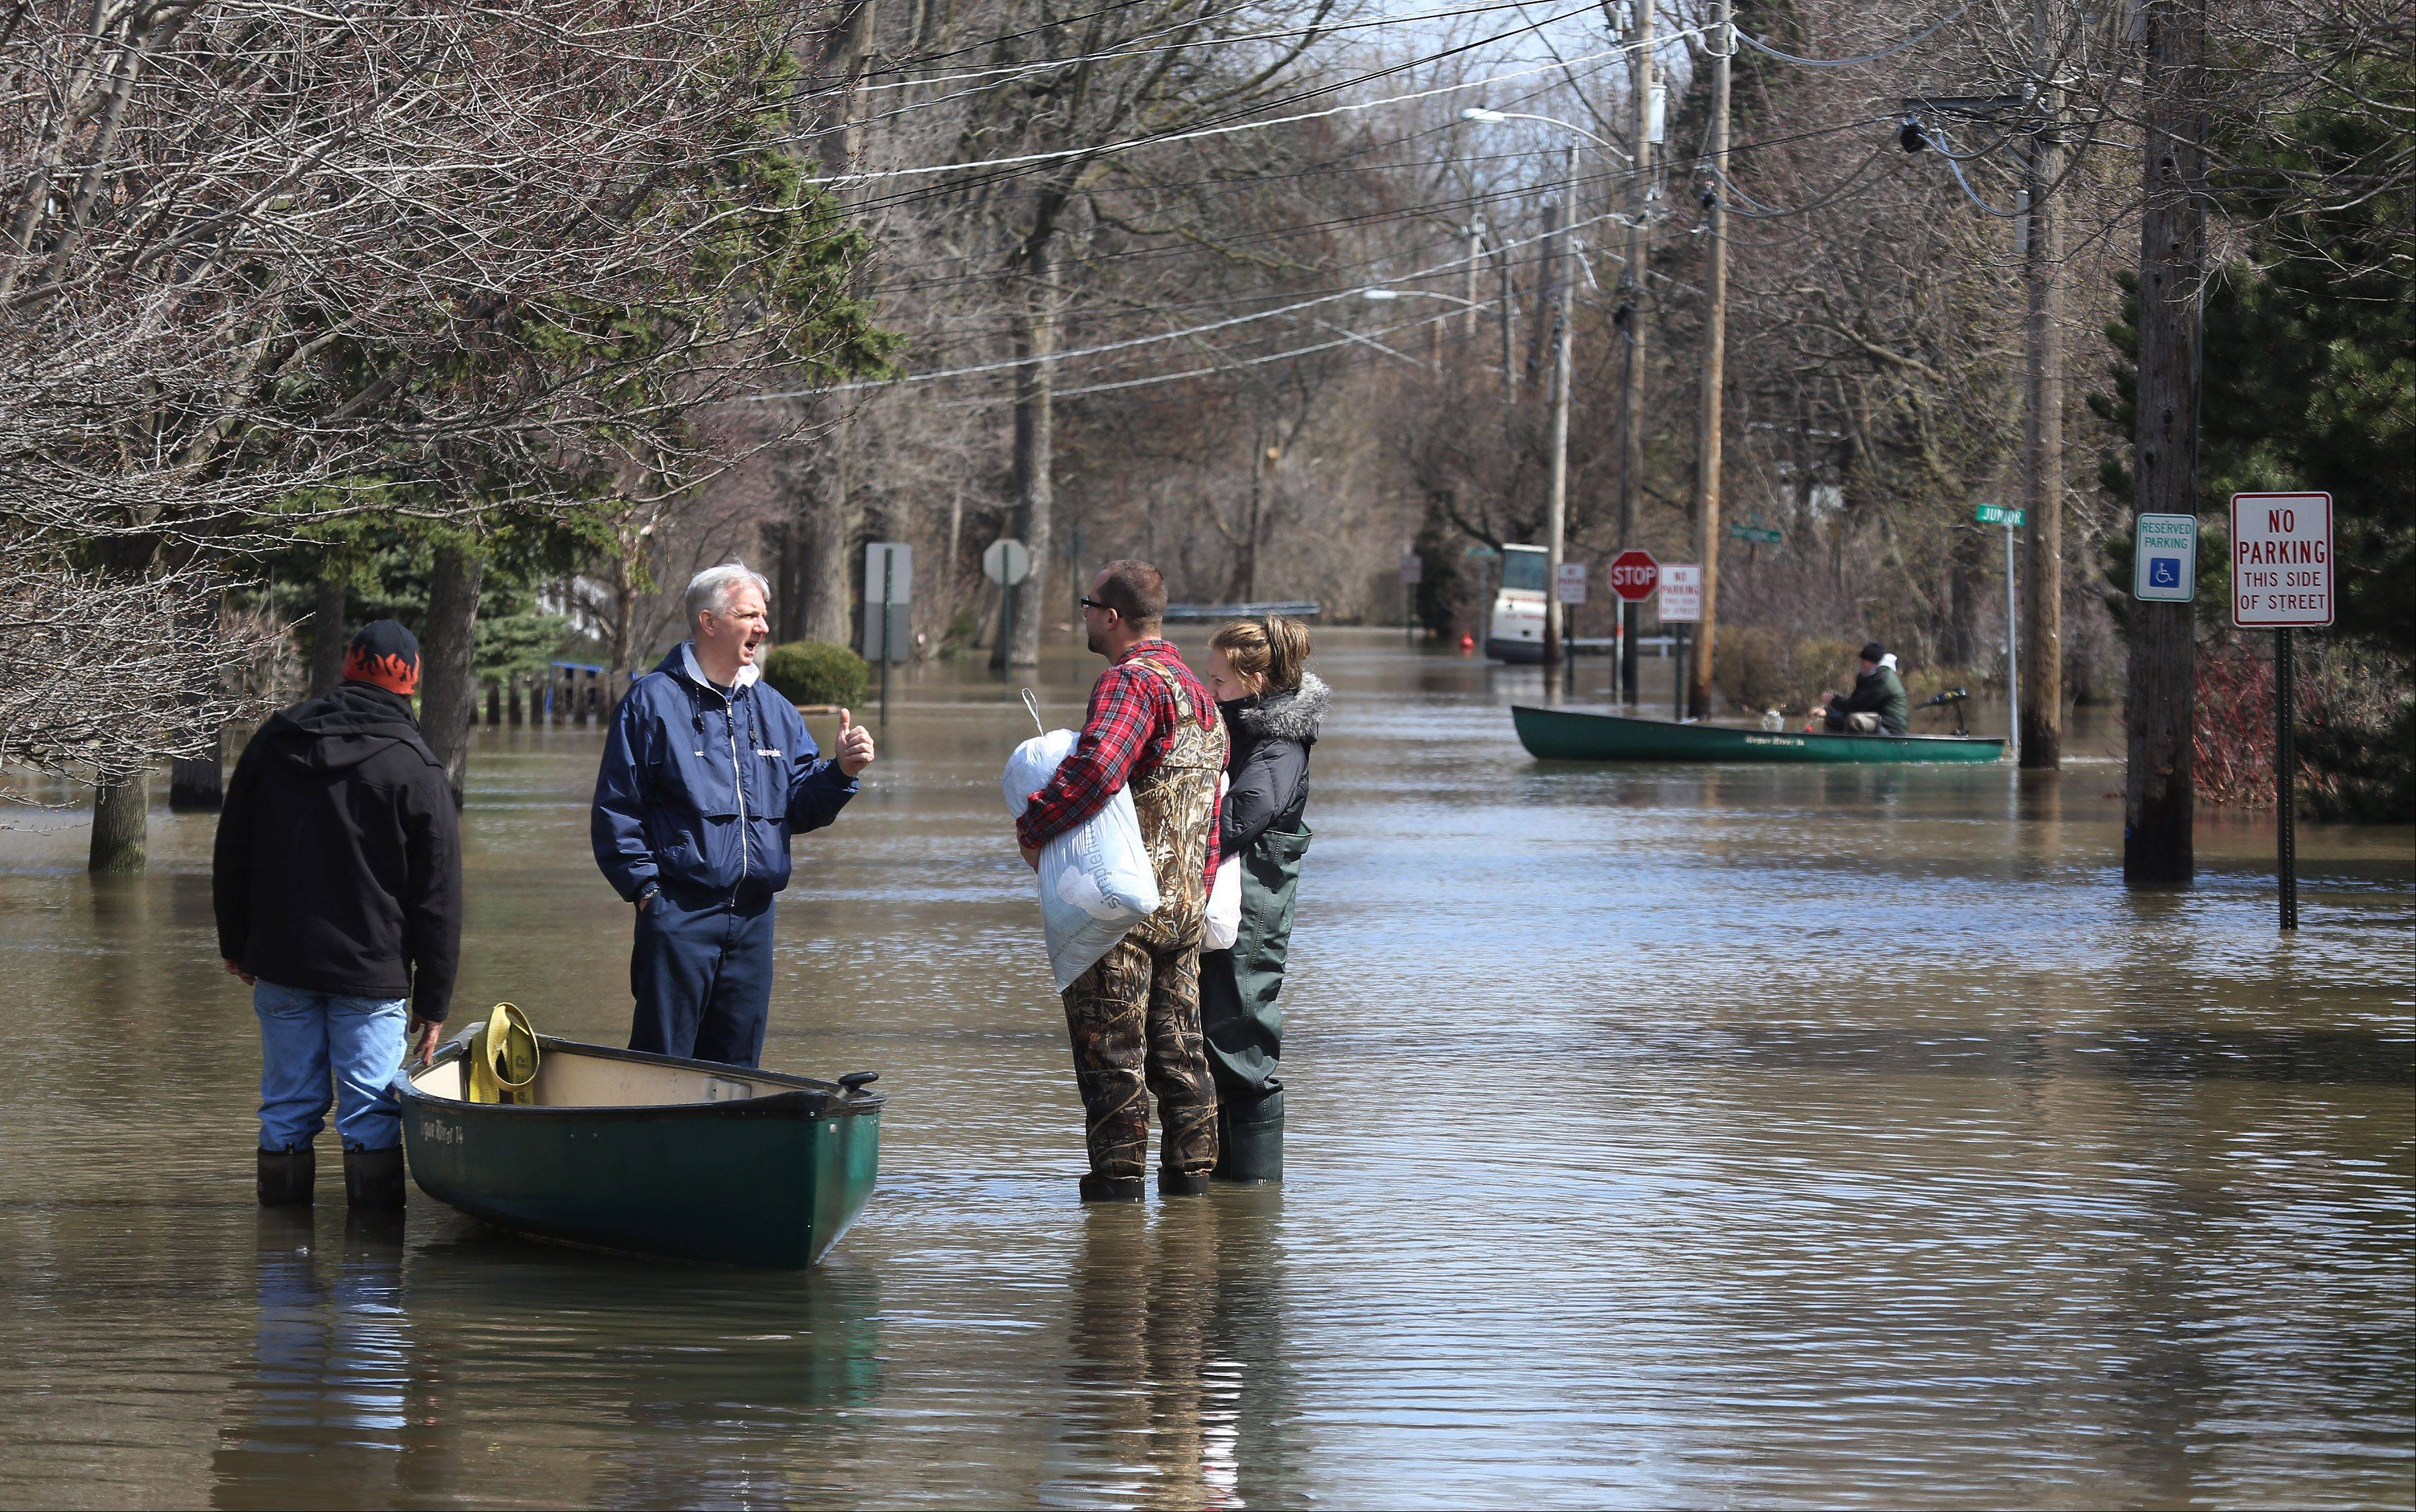 Hundreds of suburban residents are still dealing with the aftermath of April floods. At that time, canoes were the mode of transportation in some neighborhoods, such as this one in Des Plaines.